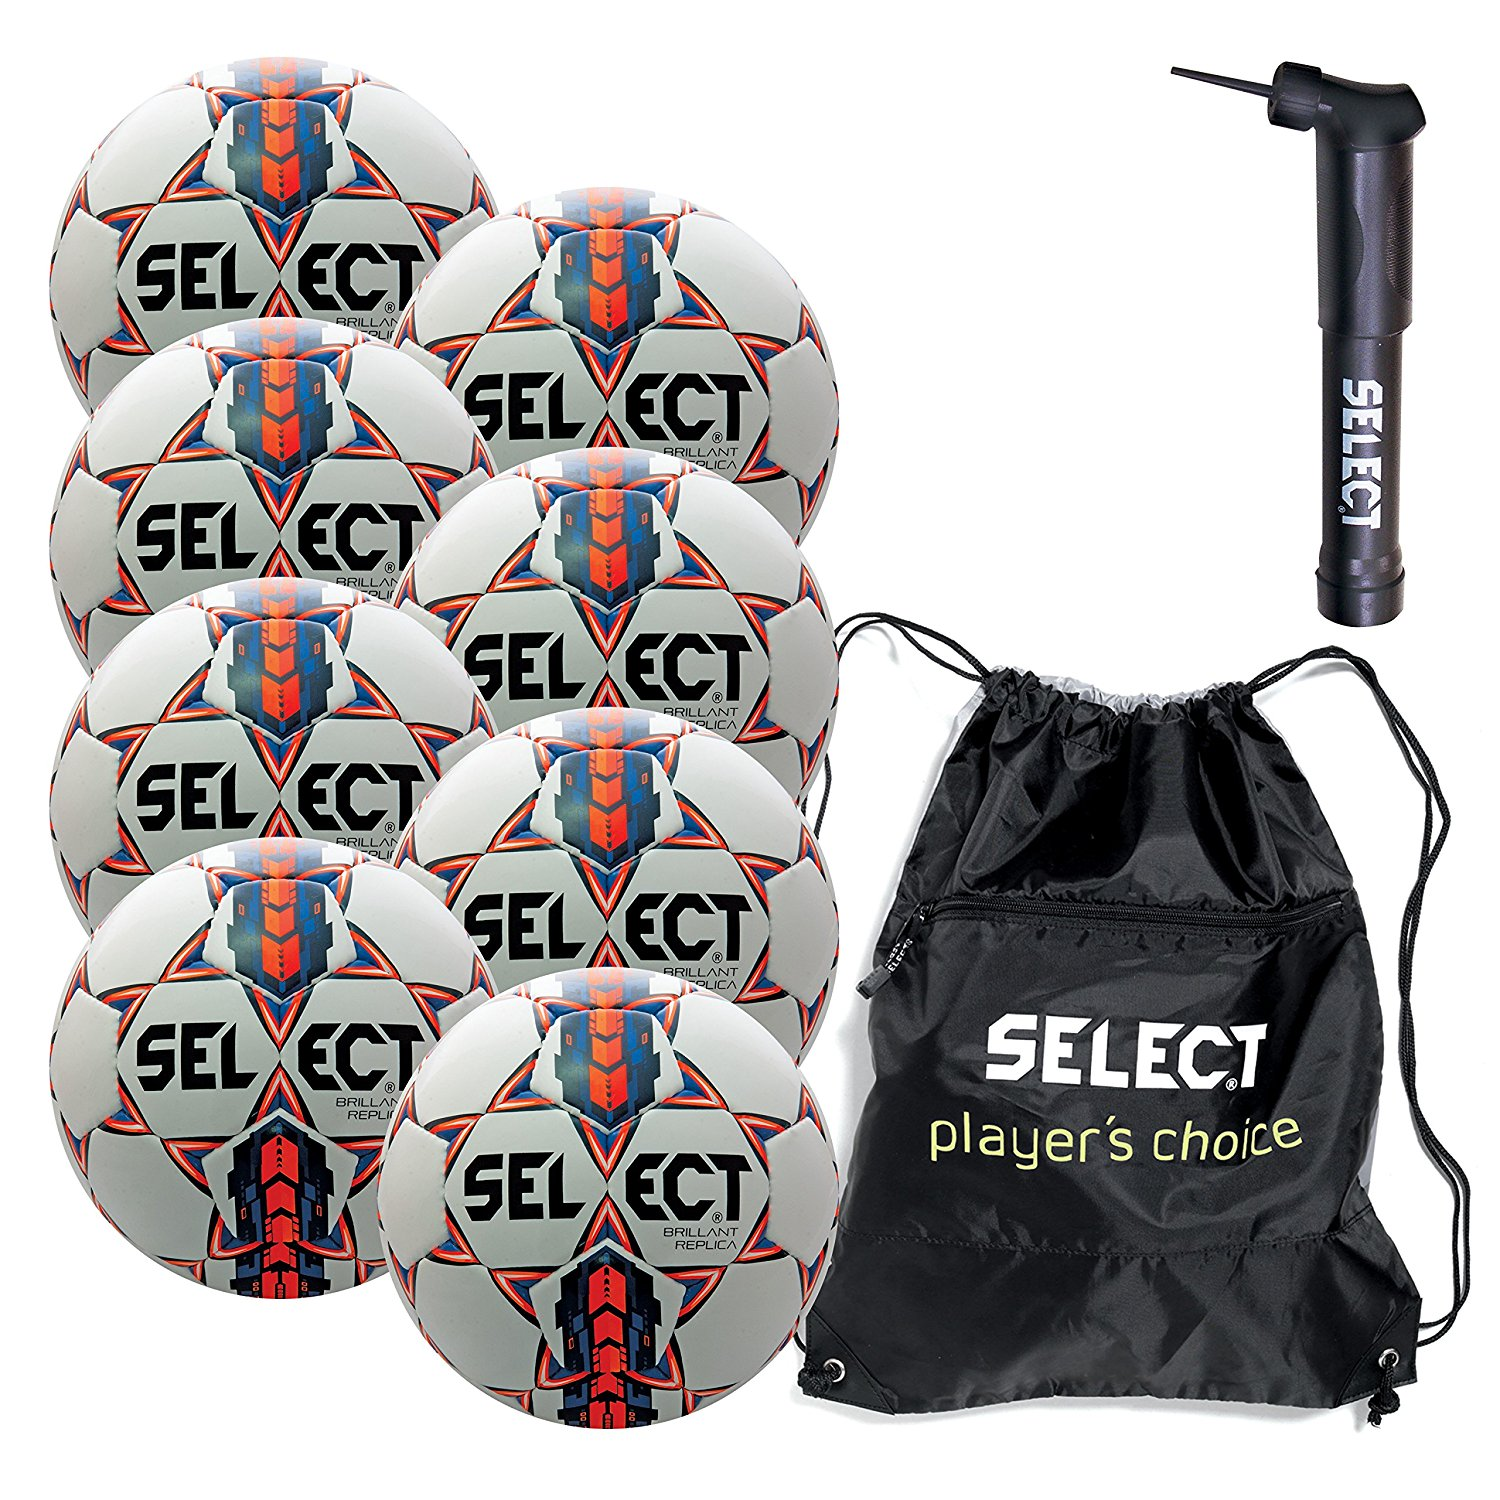 Select Brilliant Super Replica Soccer Ball with Sack Pack & Hand Pump (pack of 8)